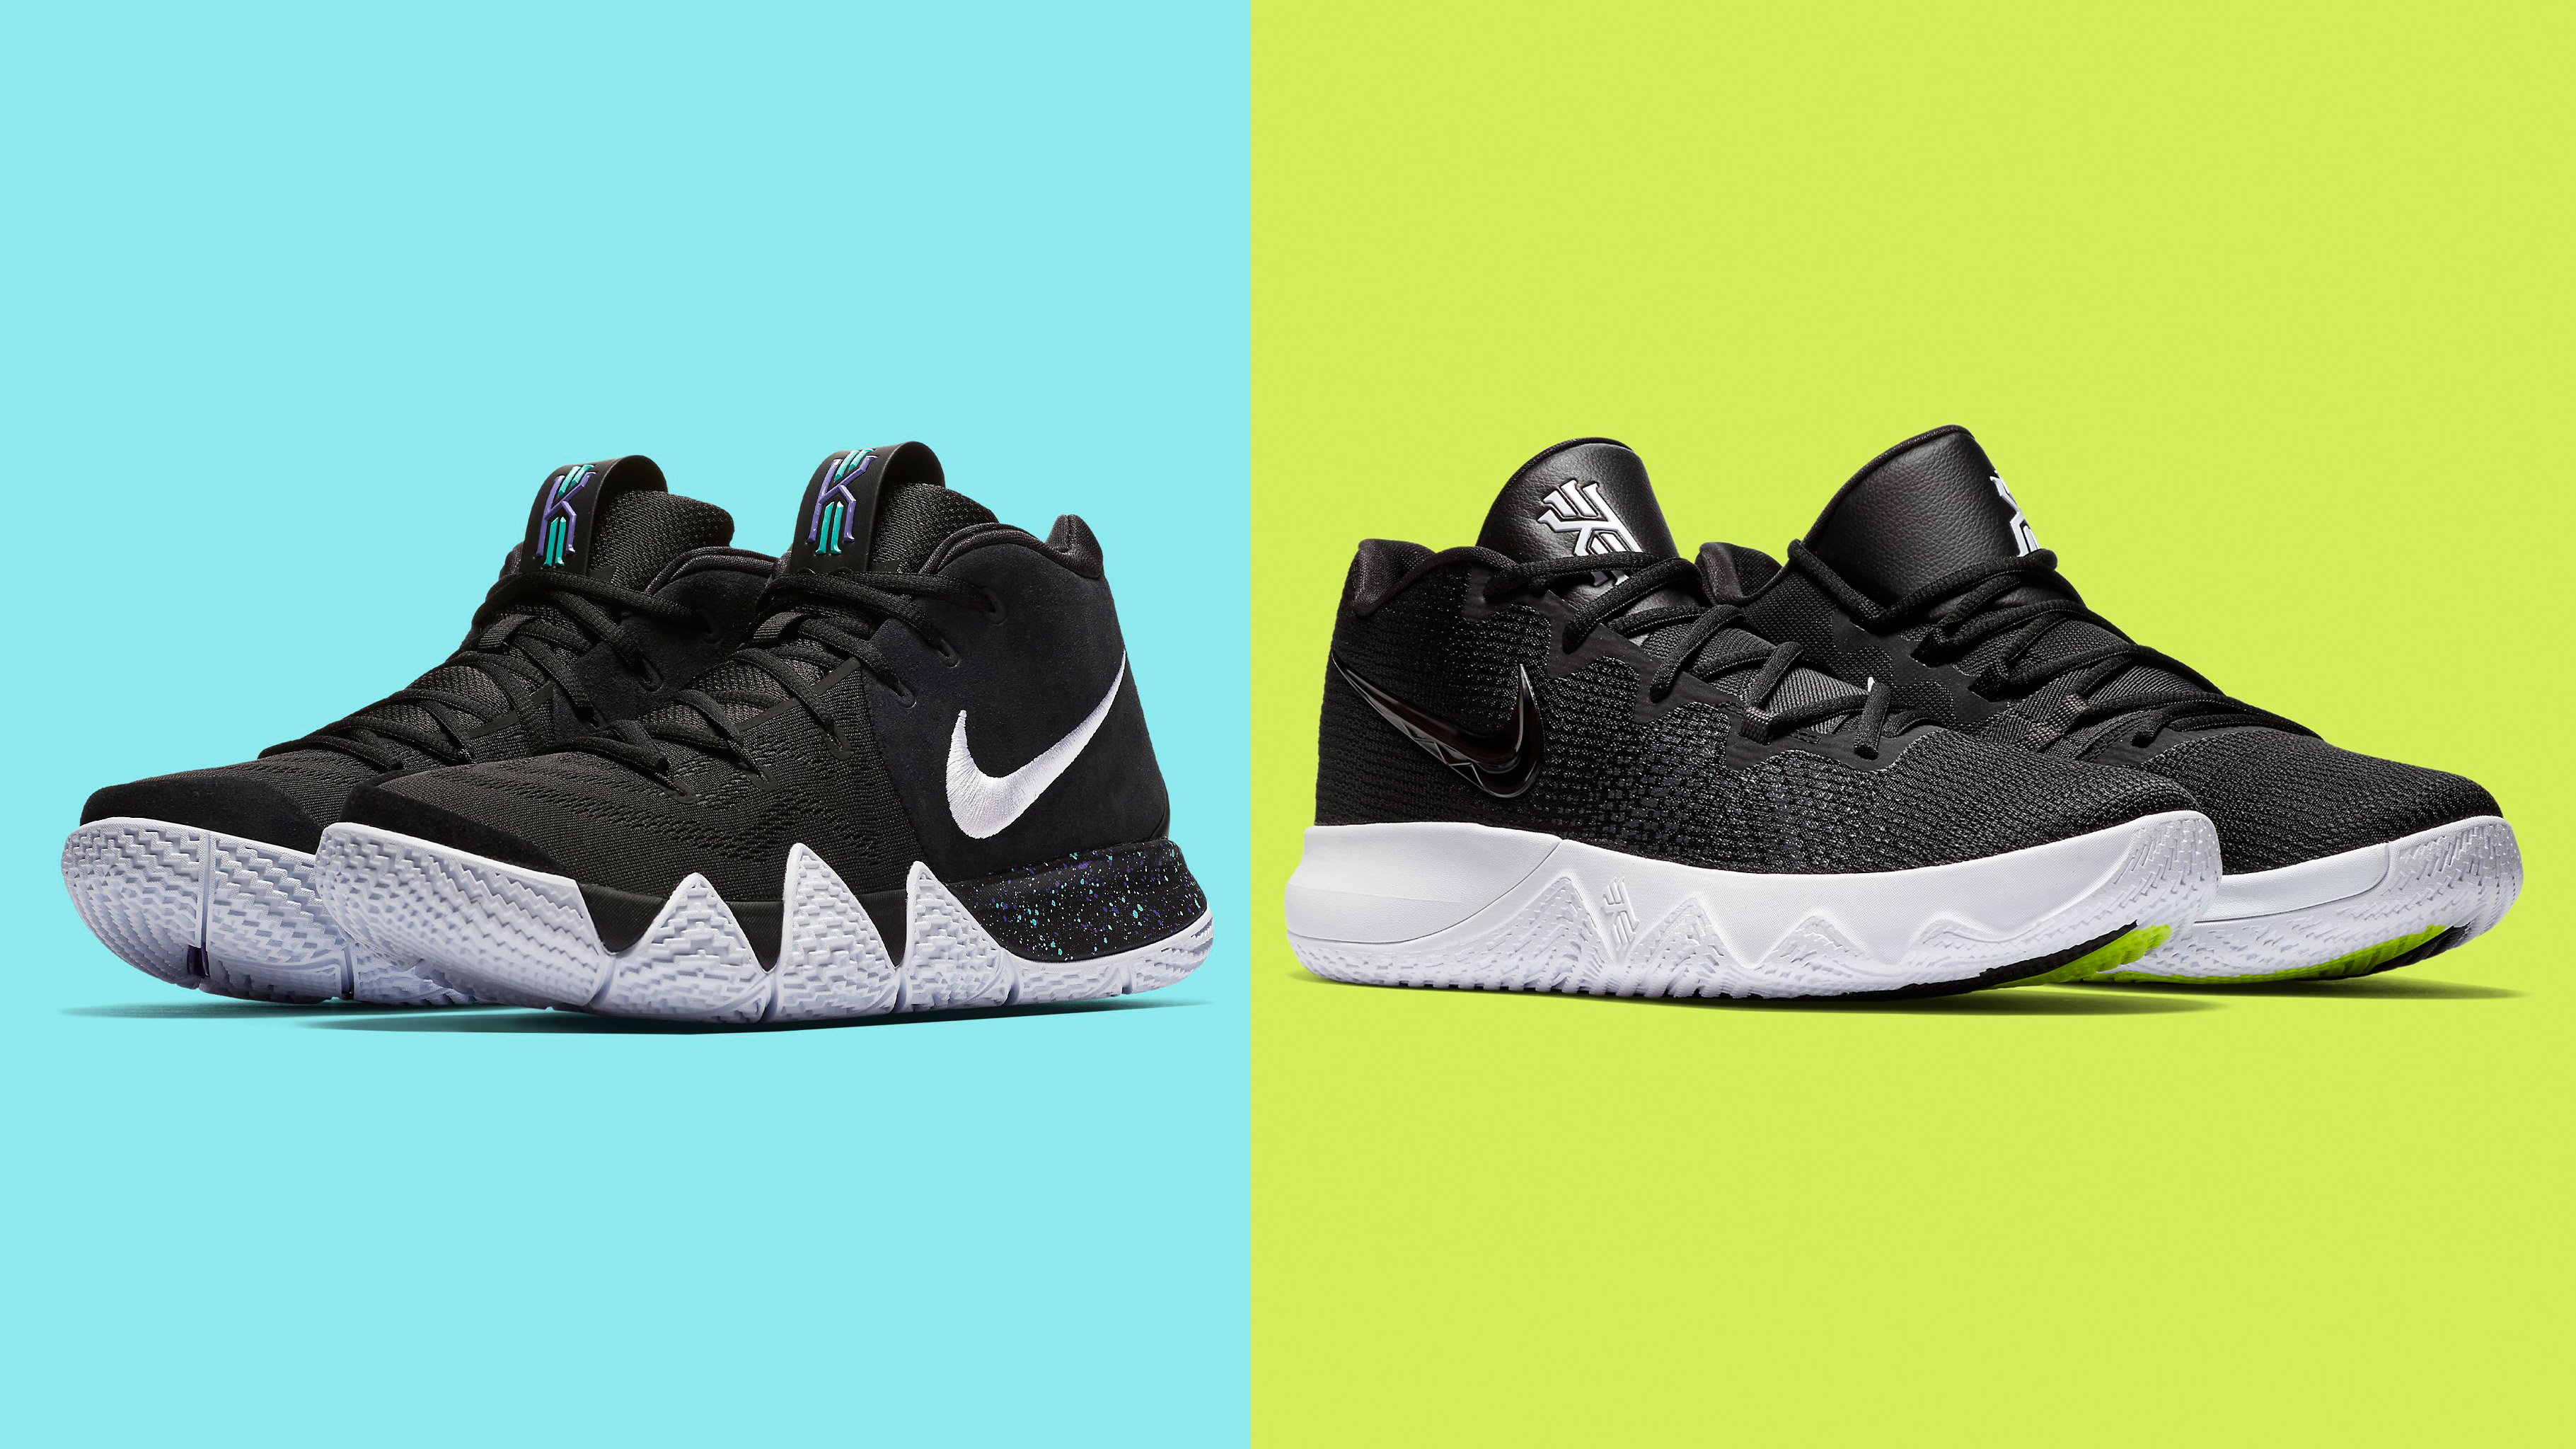 timeless design 5fc0f 1f5a8 Nike Kyrie 4 Nike Kyrie Flytrap Performance Review | Sole Collector